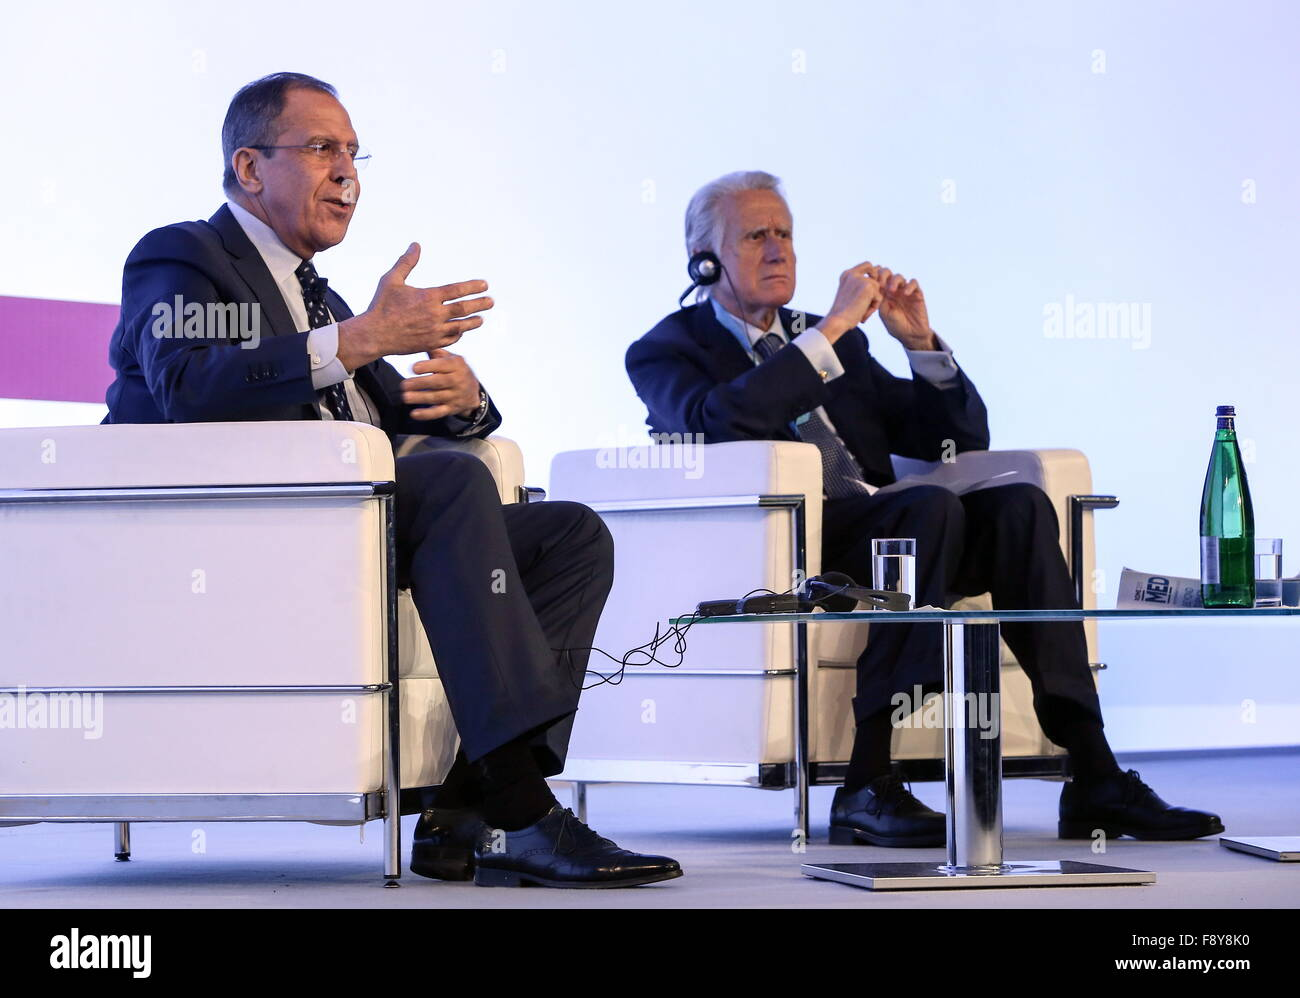 ROME, ITALY. DECEMBER 11, 2015. Russia's Foreign Minister Sergei Lavrov (L) speaks at the Rome 2015 MED - Mediterranean - Stock Image